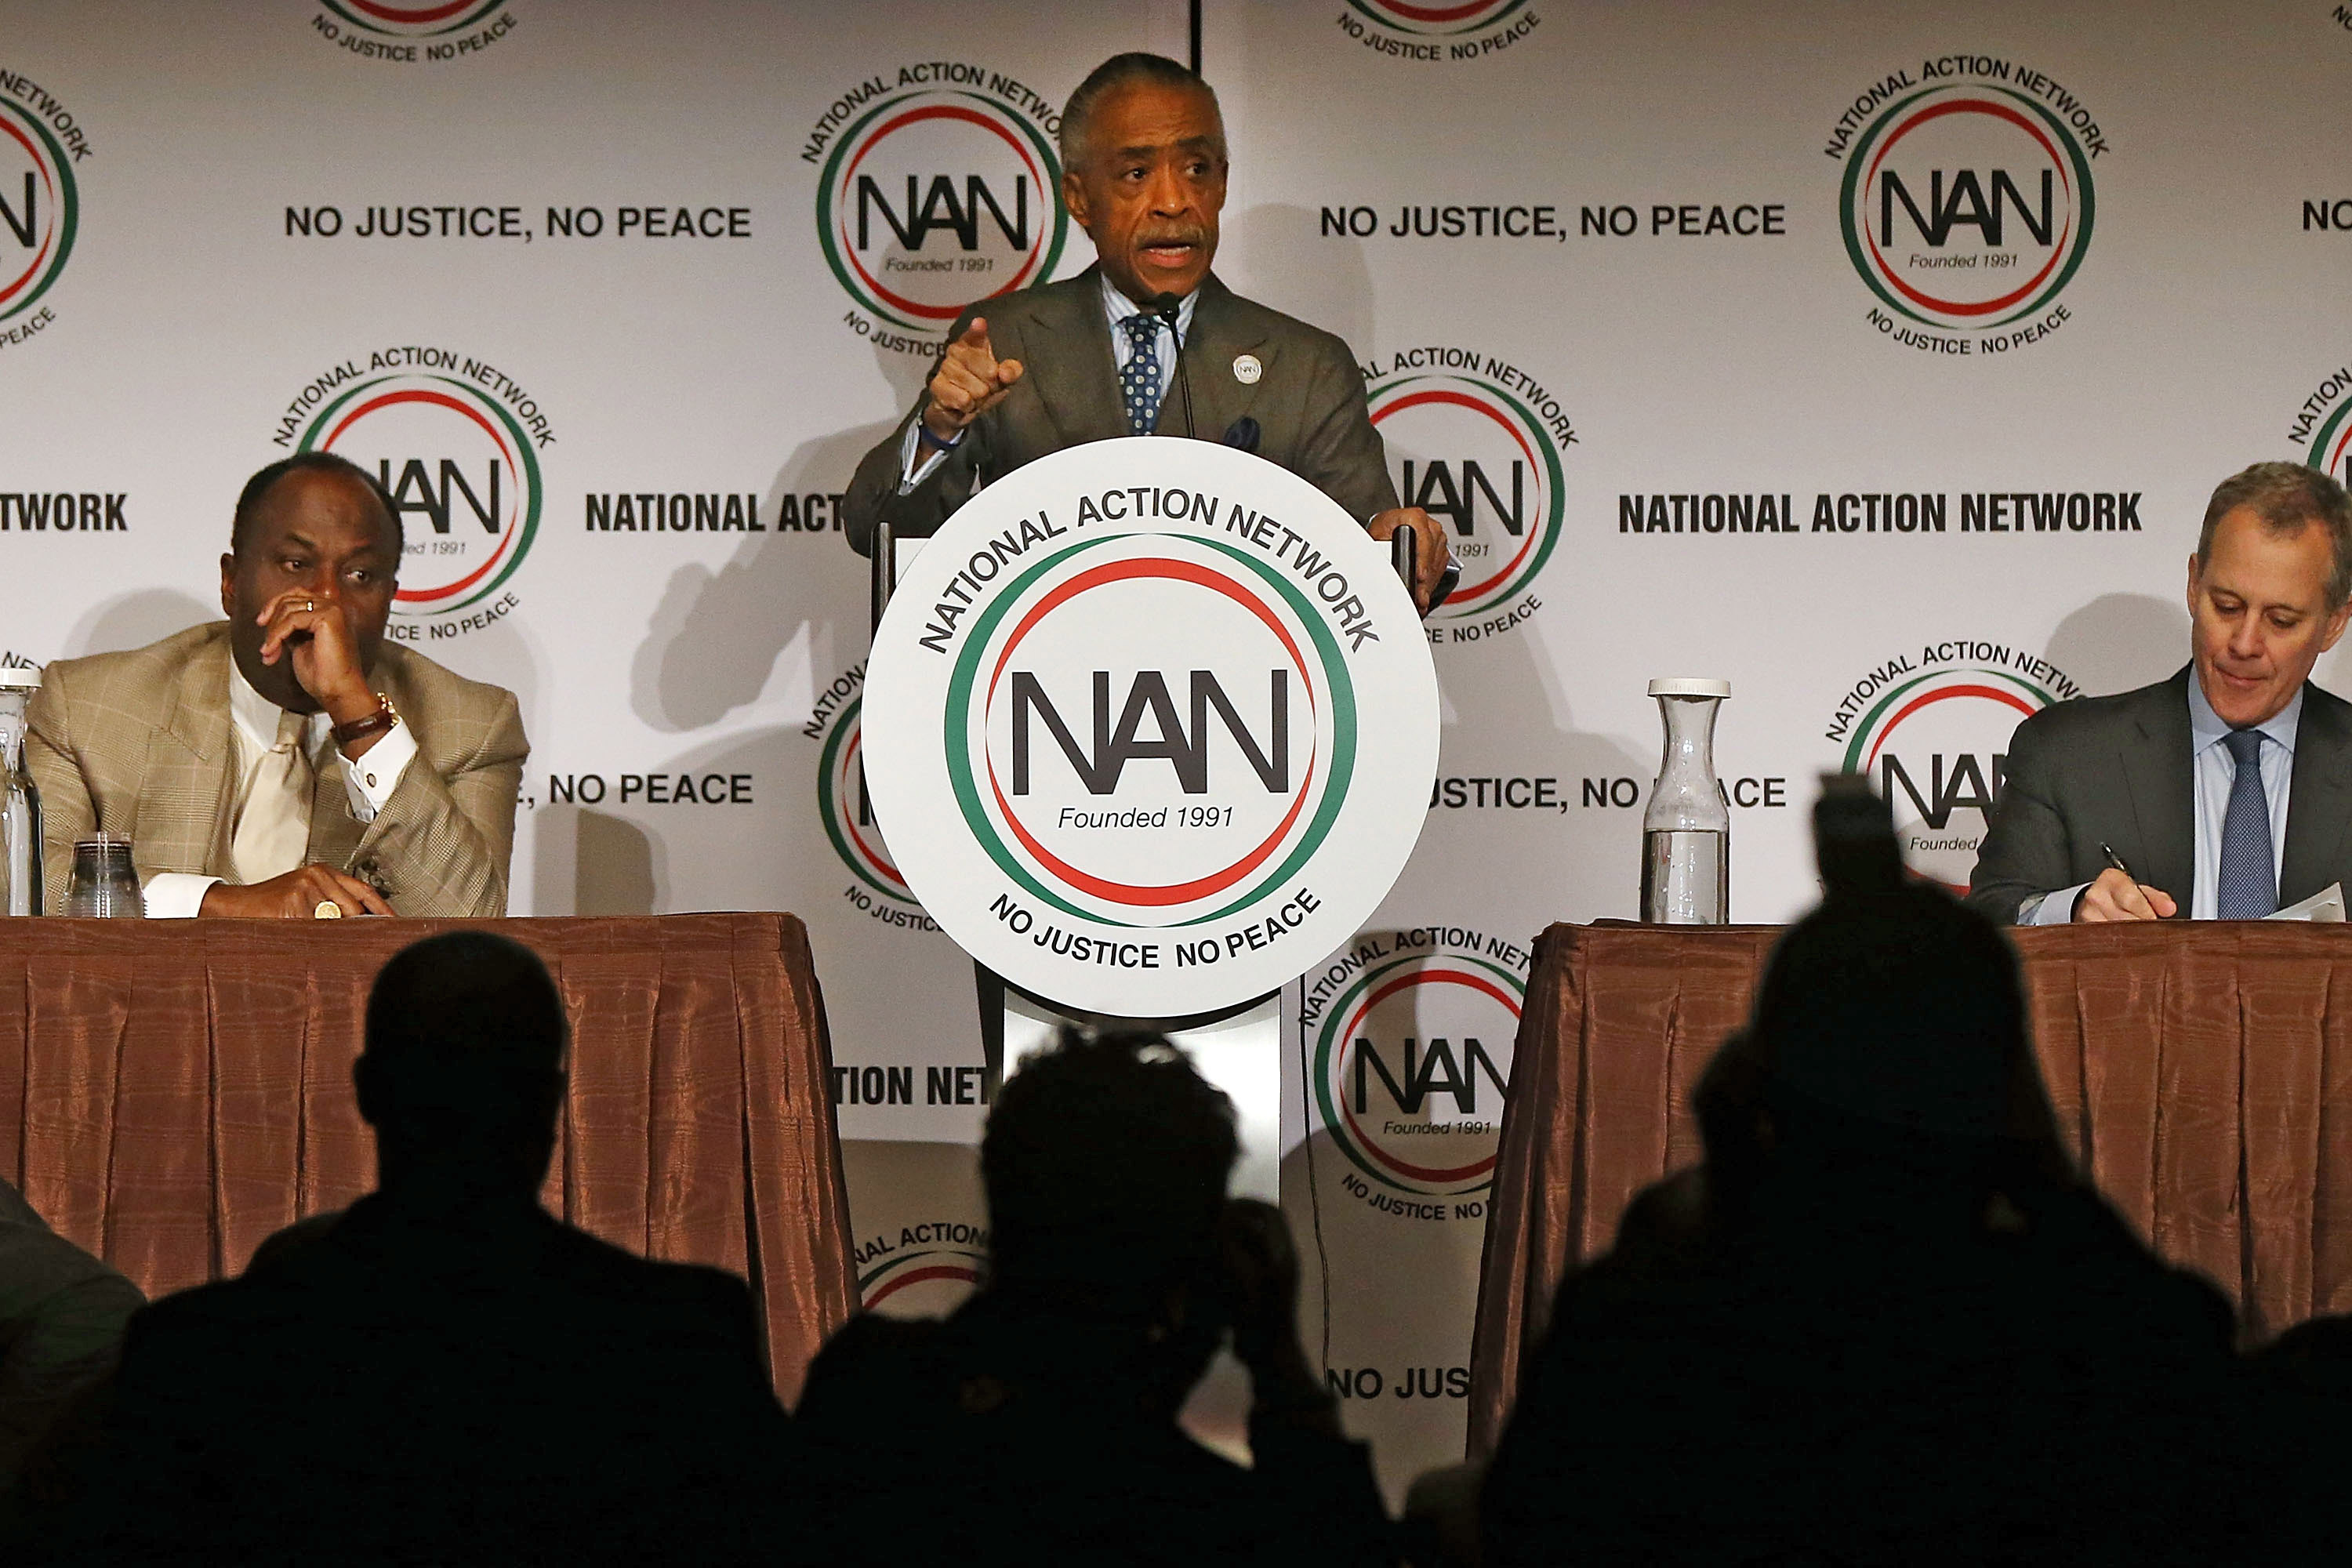 Rev. Al Sharpton at a National Action Network event earlier this year. (Photo by Spencer Platt/Getty Images)